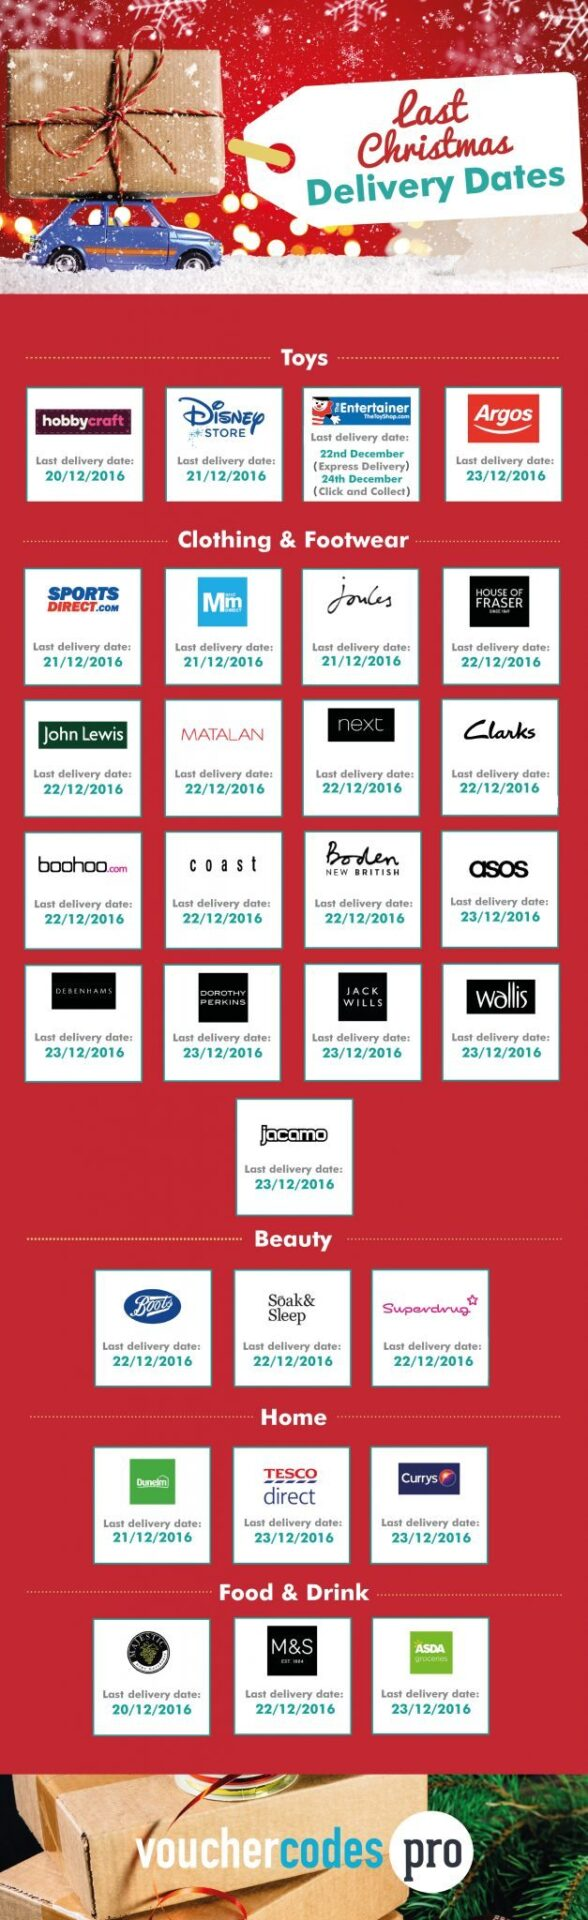 Last order dates in the UK for top retail stores - brilliant work!